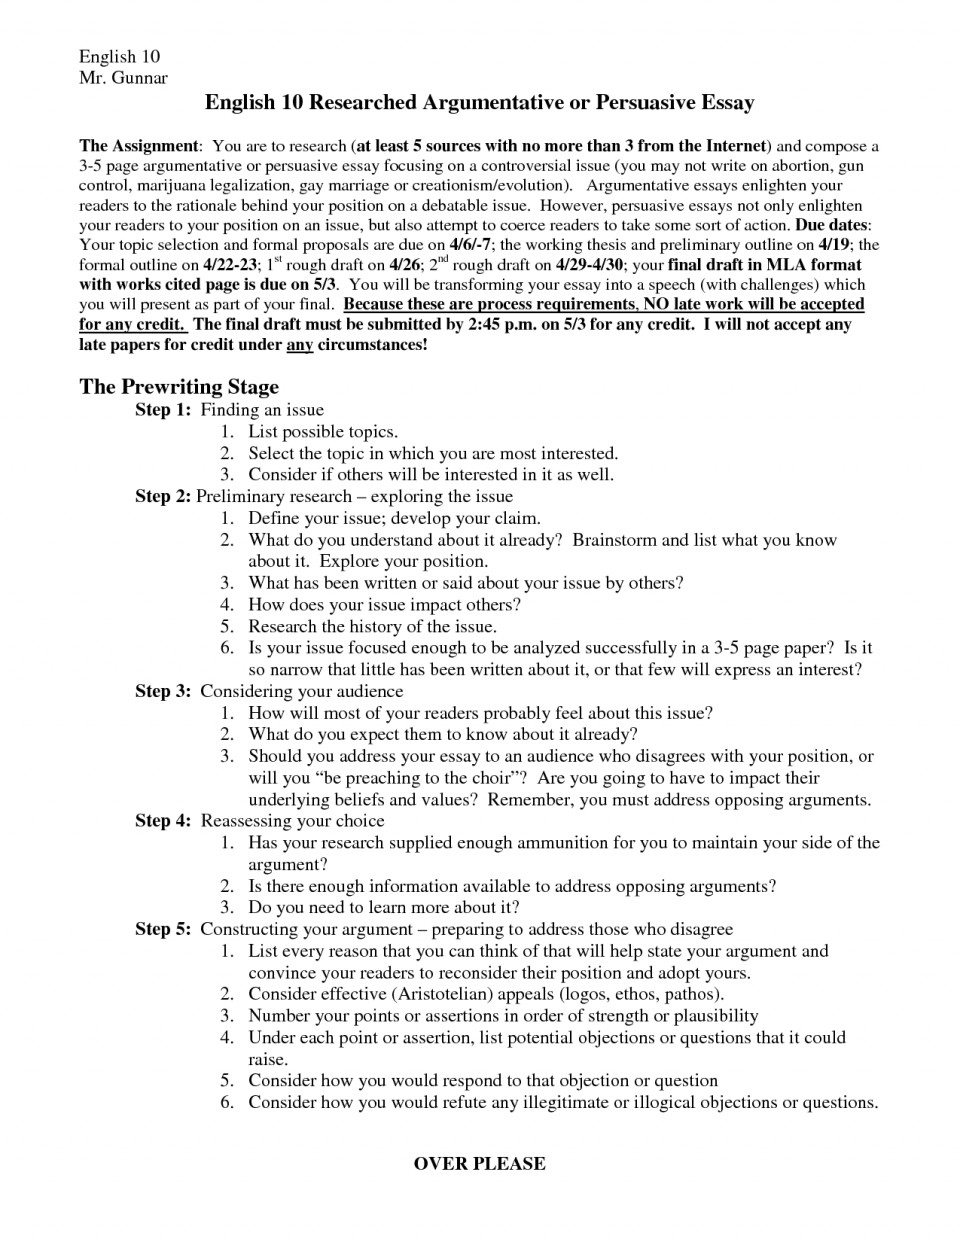 007 How To Do An Outline For Research Paper Example Mla Format Argumentative Essay 472291 Stupendous A Write Sample 960